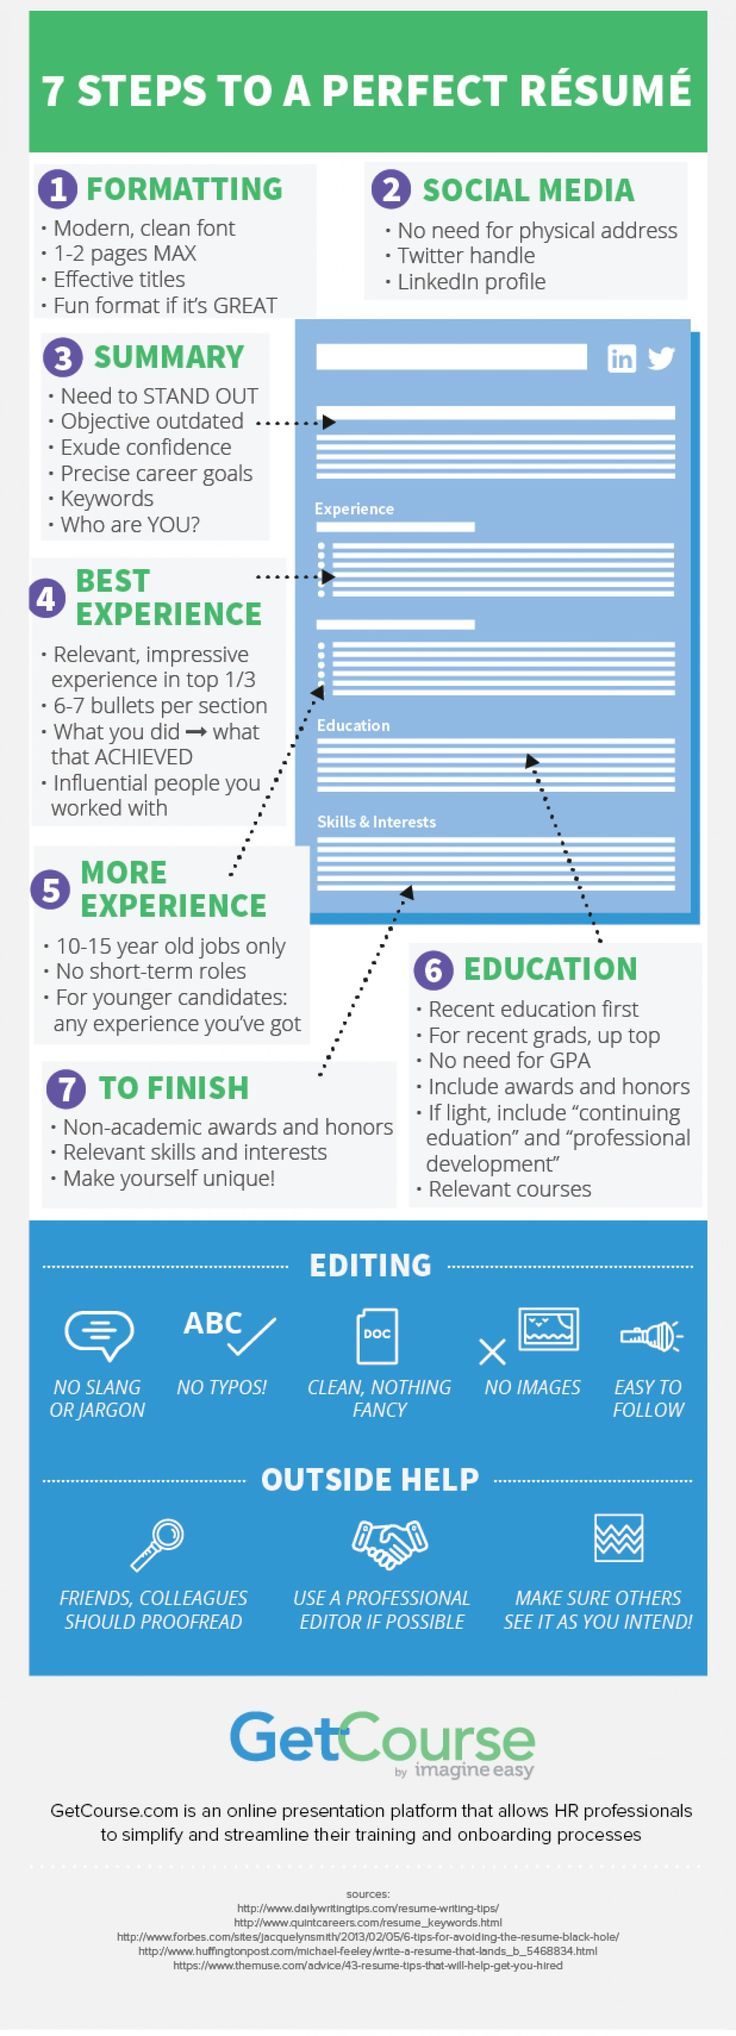 7 steps to a perfect resume infographic is one of the best infographics created in the how to category check out 7 steps to a perfect resume now